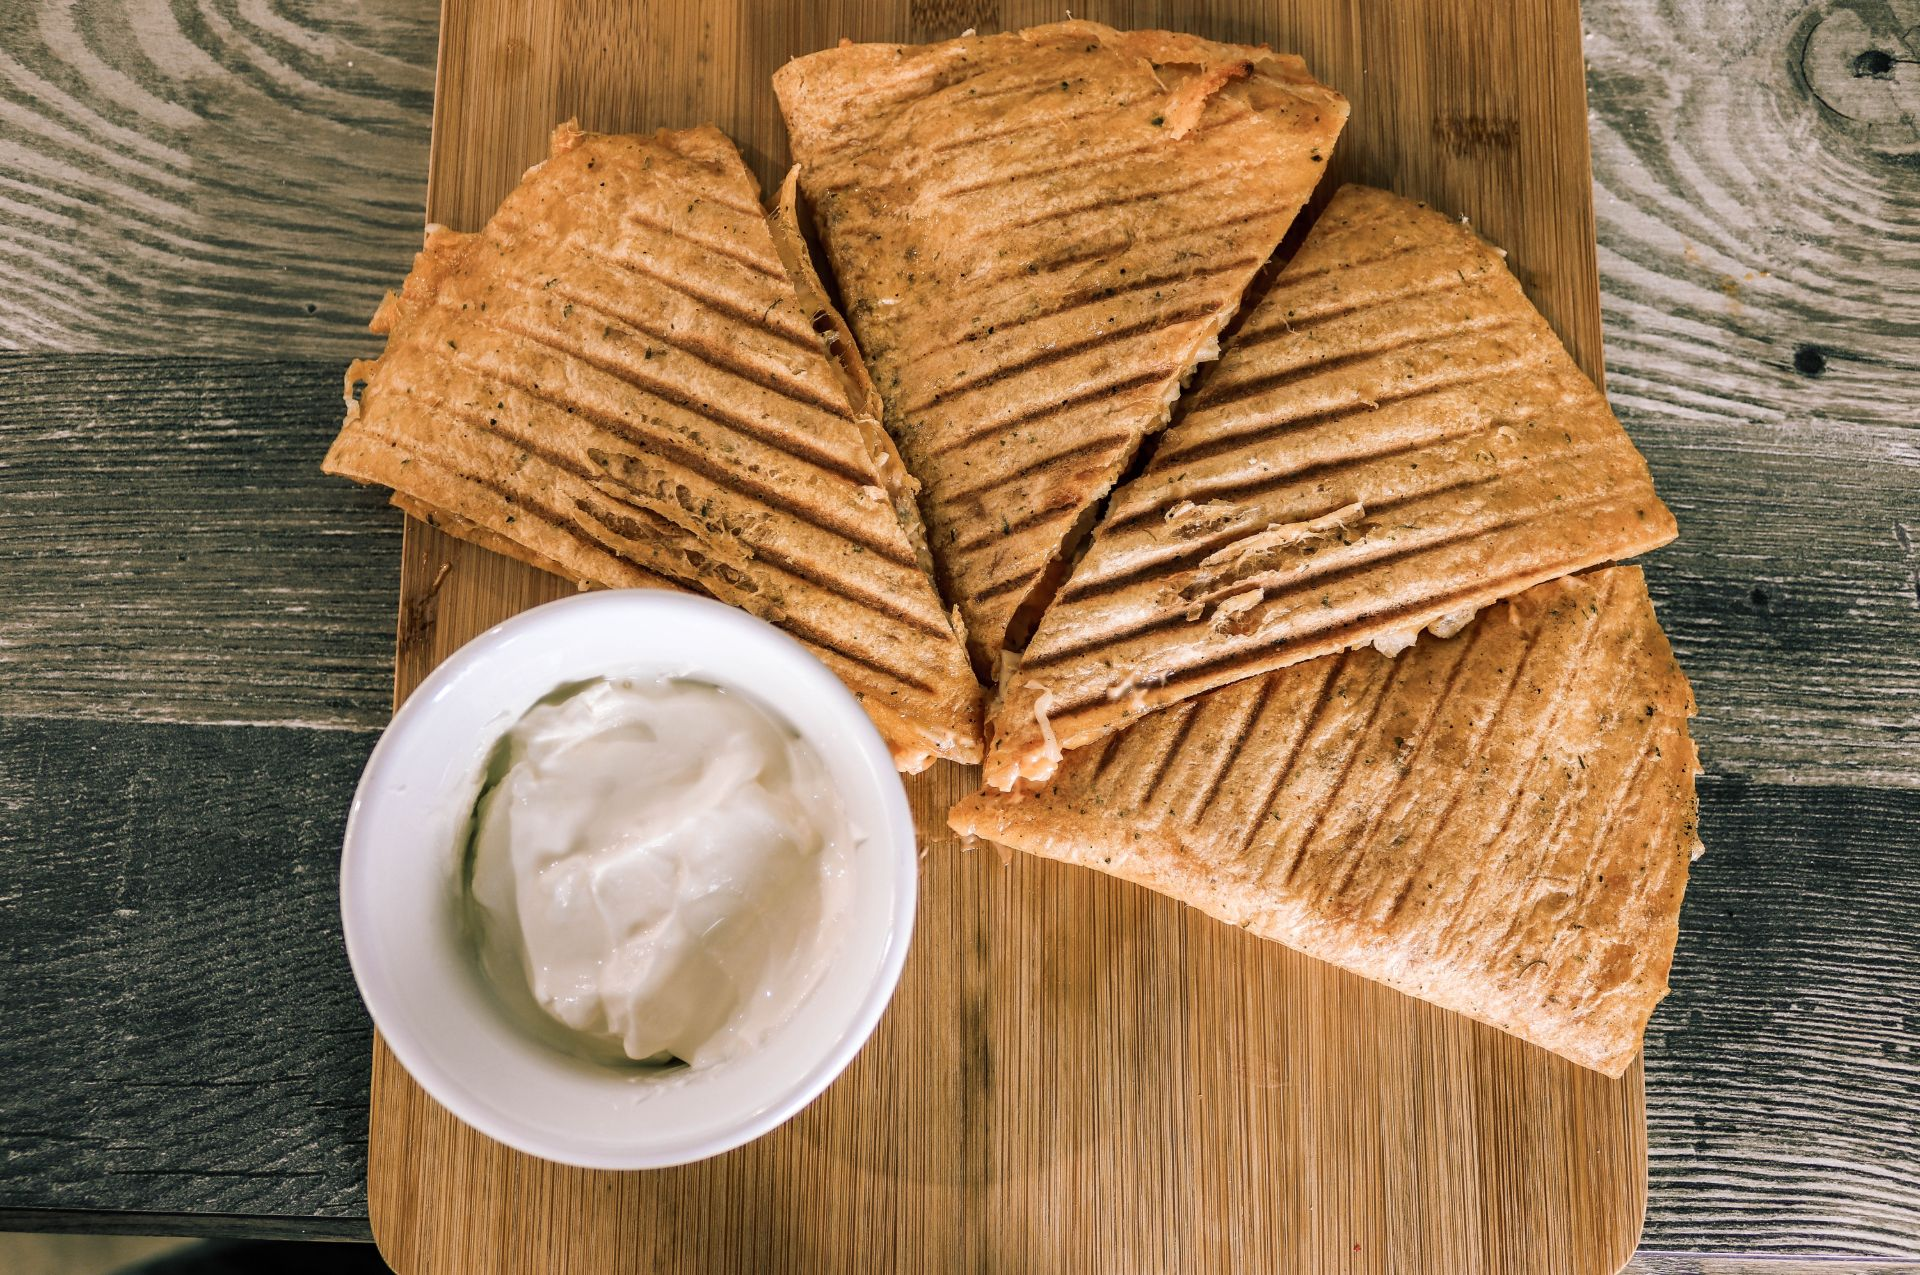 Chicken quesadilla on a wood board with sour cream